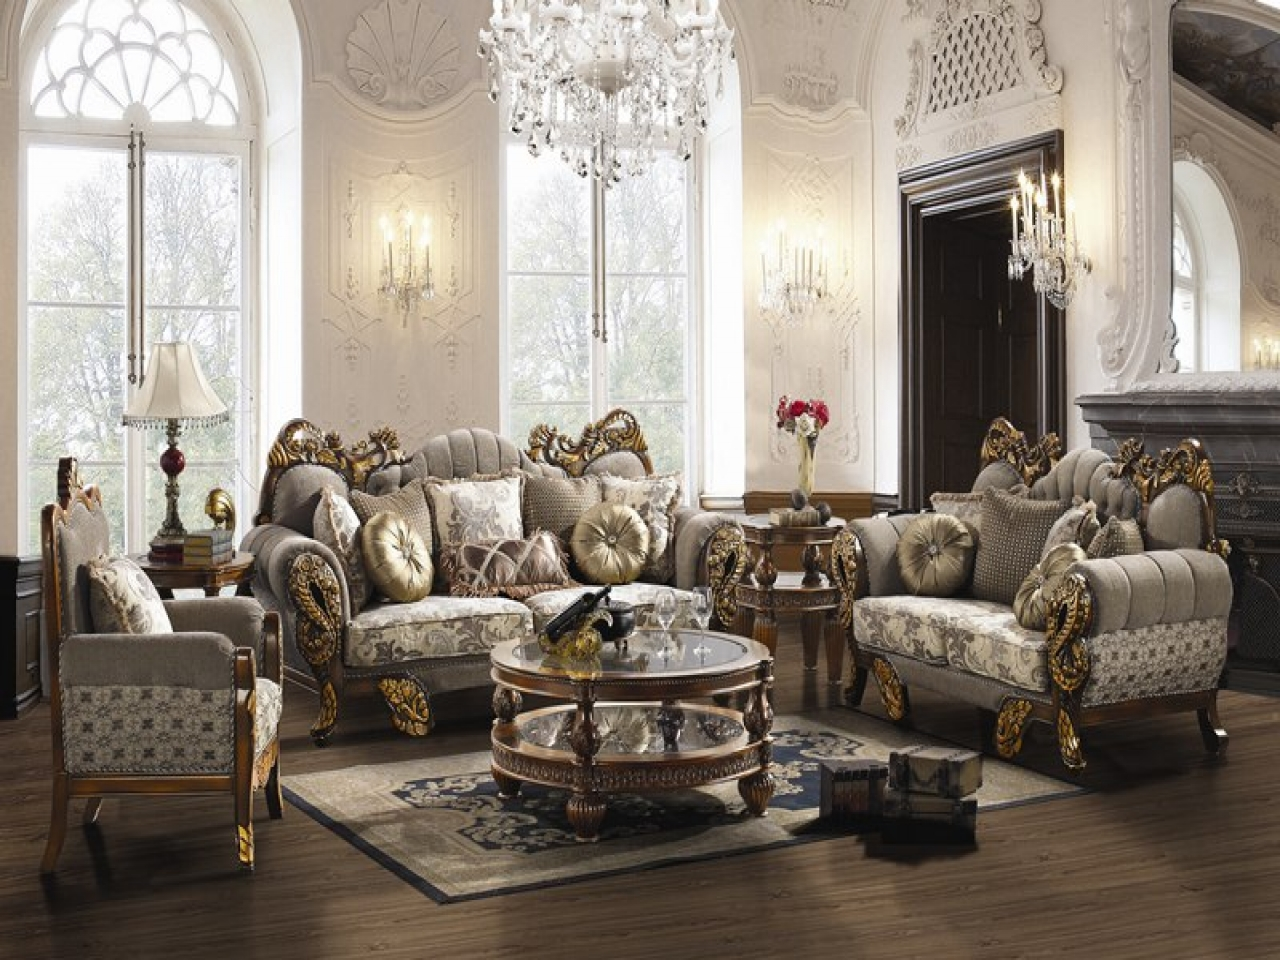 It is better to plan your dream living room now and start making an effort to save up for furniture that you may want to add in the future